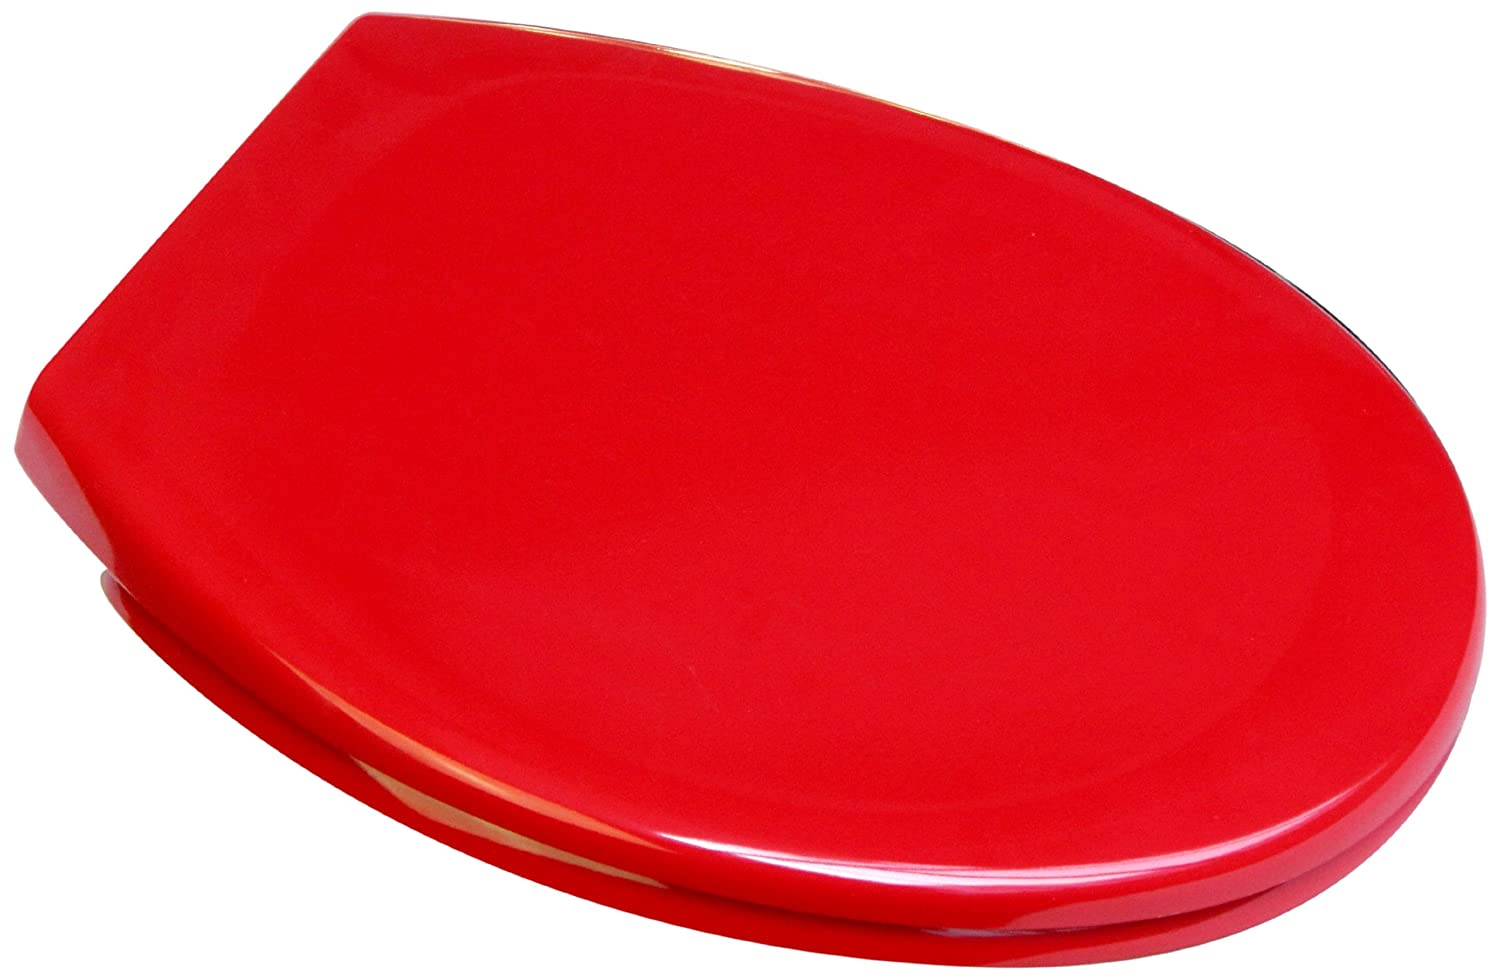 toilet seat covers uk.  Red Toilet Seat Amazon co uk Kitchen Home